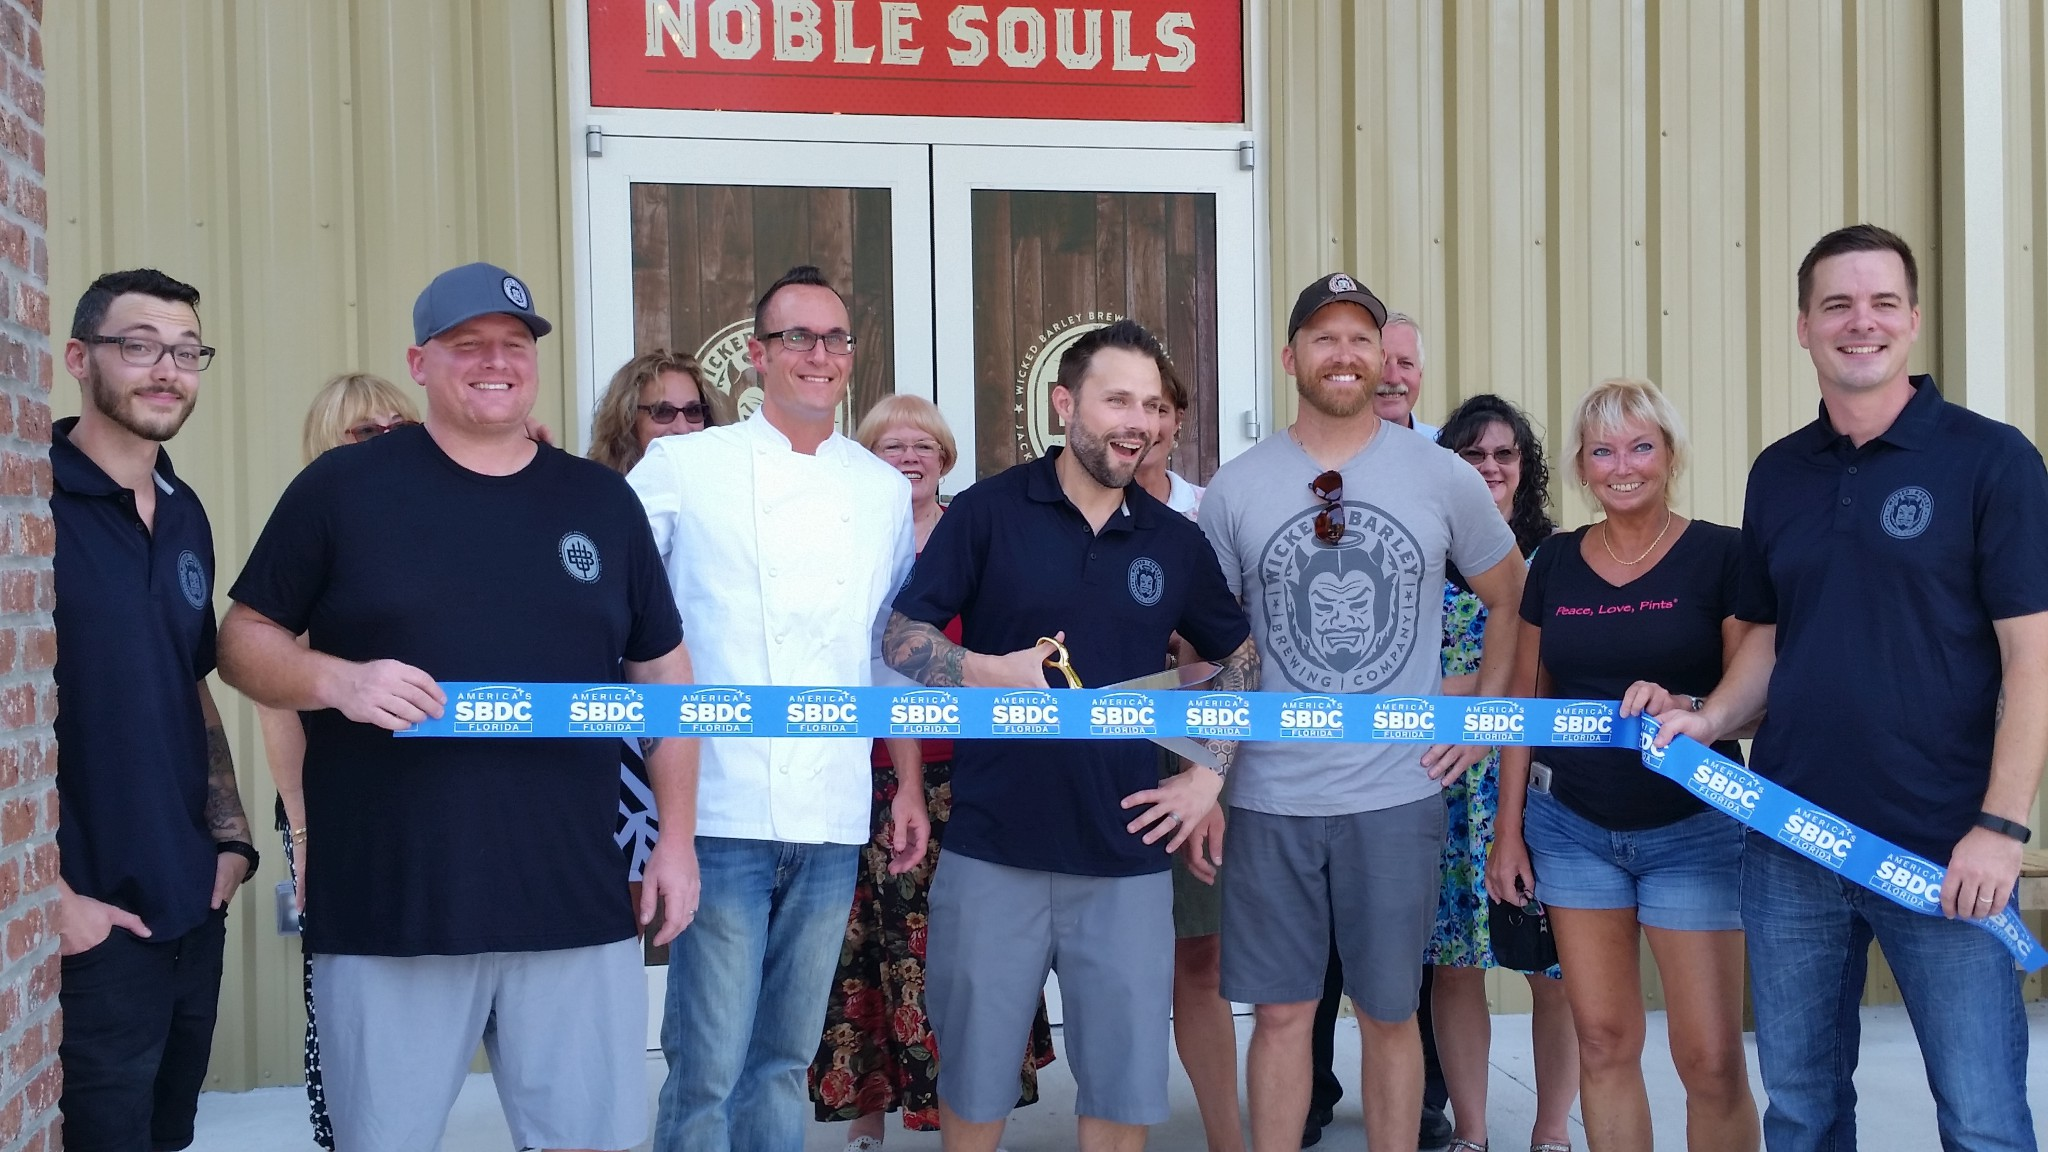 Wicked Barley - Ribbon Cutting